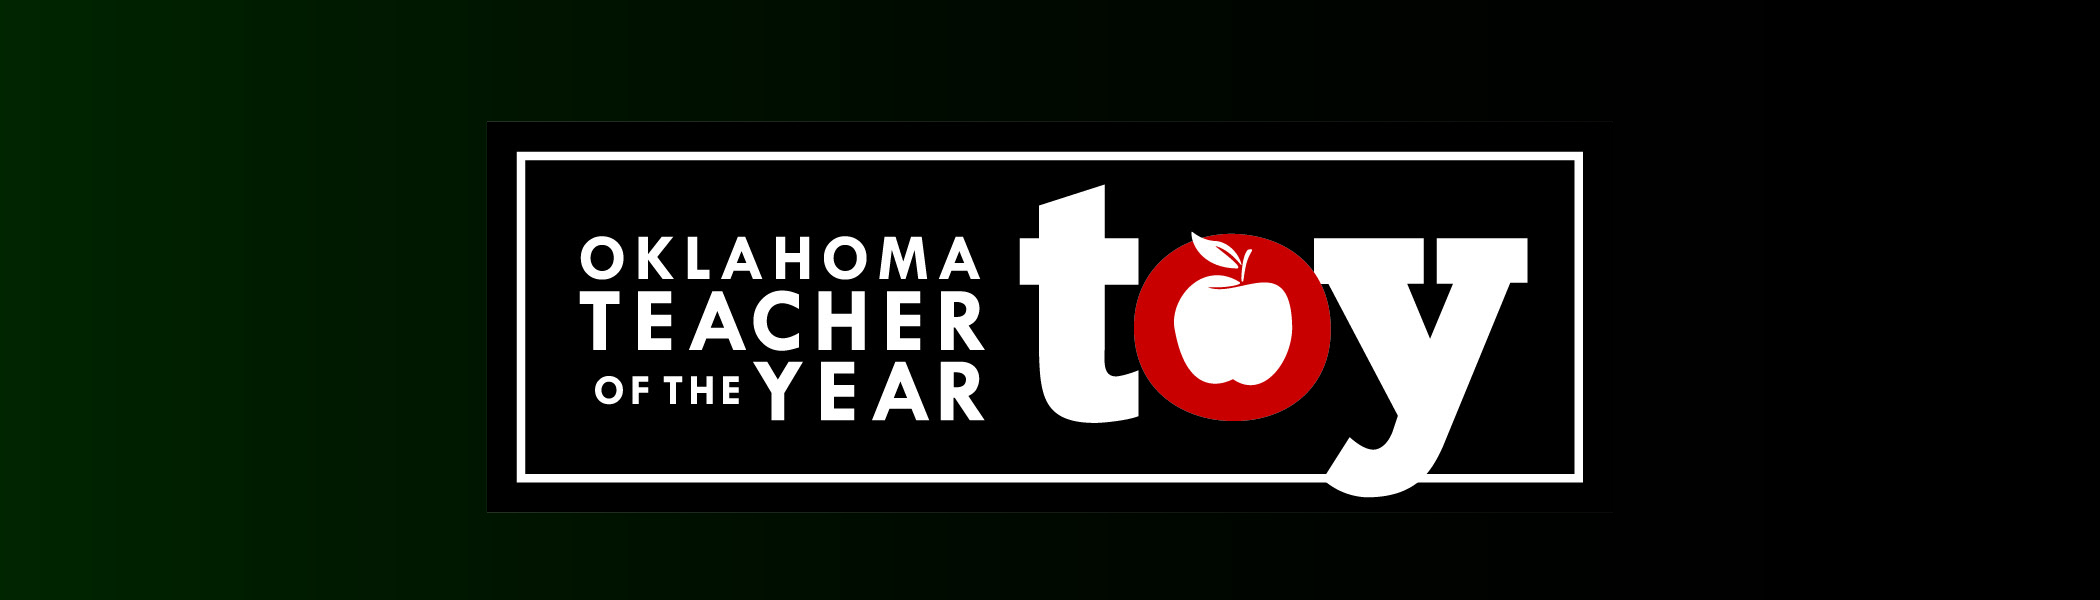 Oklahoma Teacher of the Year Banner